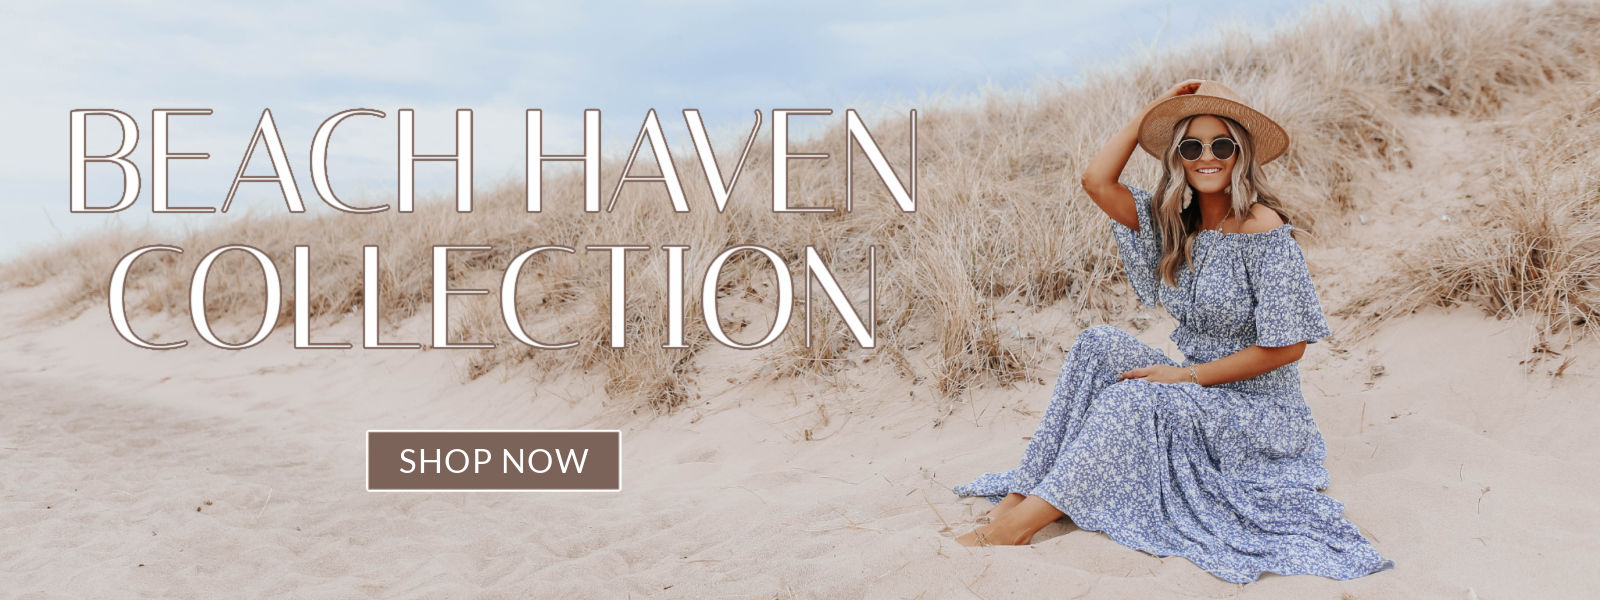 Magnolia Boutique Beach Haven Collection is now live!